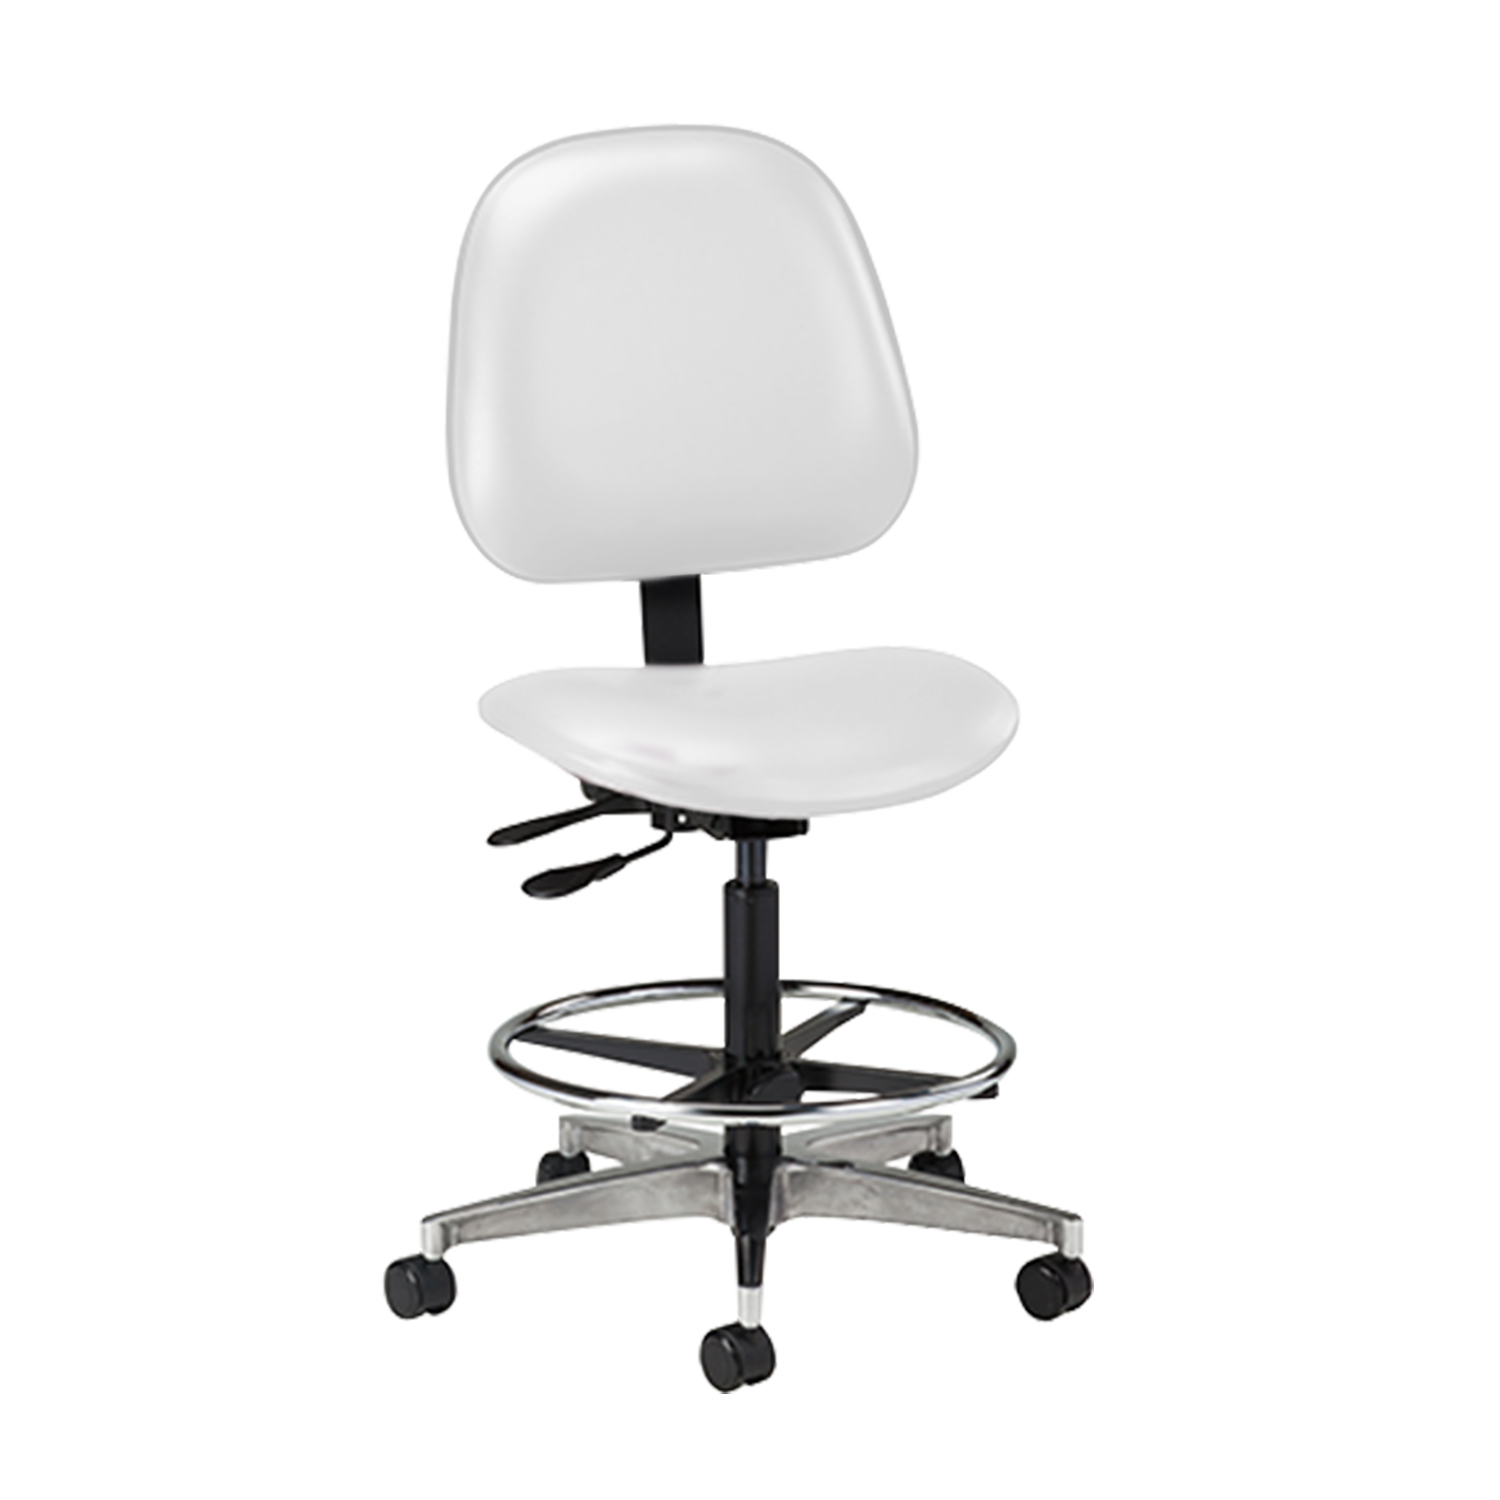 Lab Stool Contour Seat and Backrest